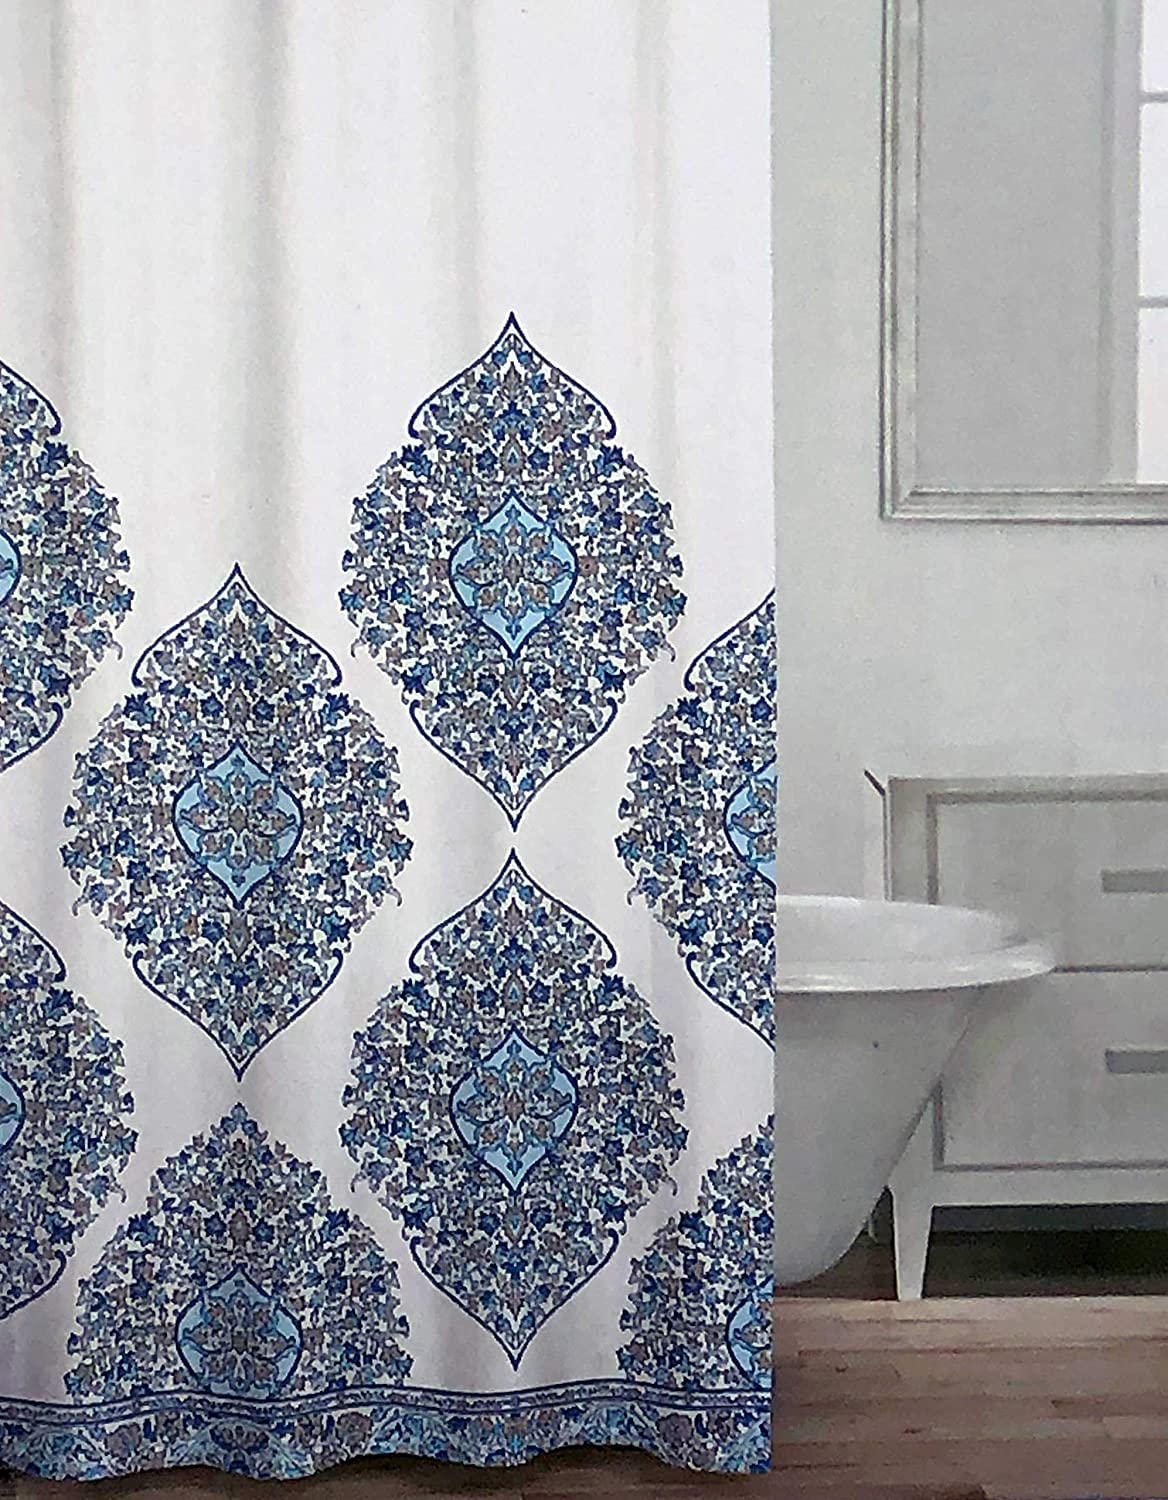 Caro Fabric Shower Curtain Large Intricate Boho Floral Medallions in Shades of Blue and Beige on White - Patrizia, Aqua